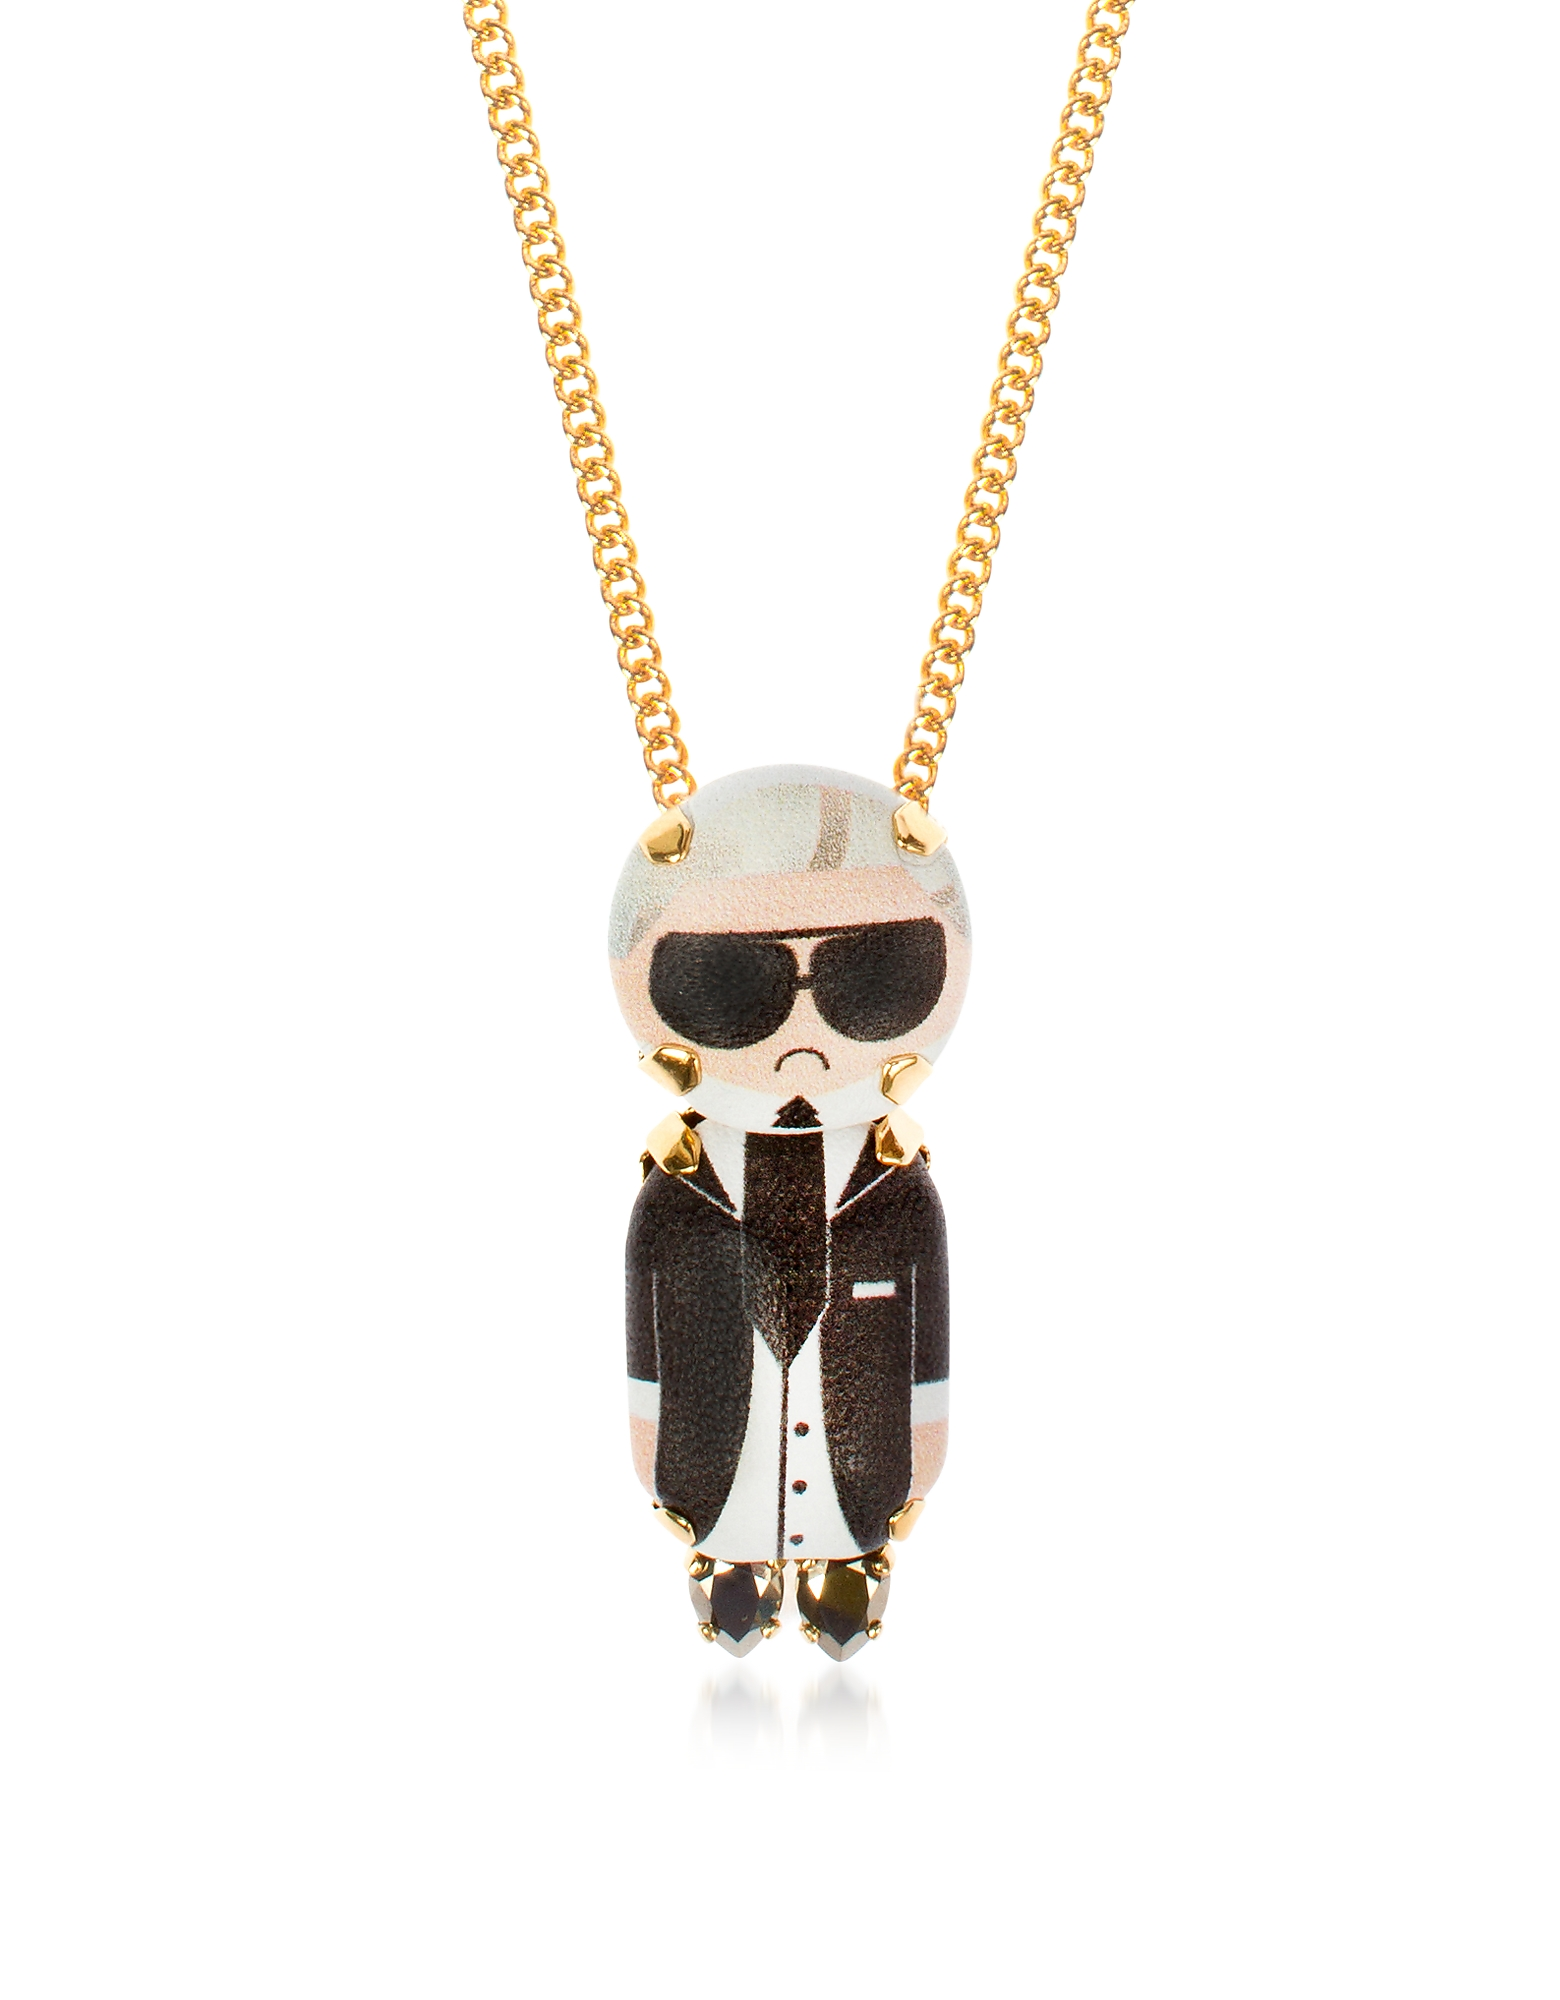 Karl Chain Pendant Necklace